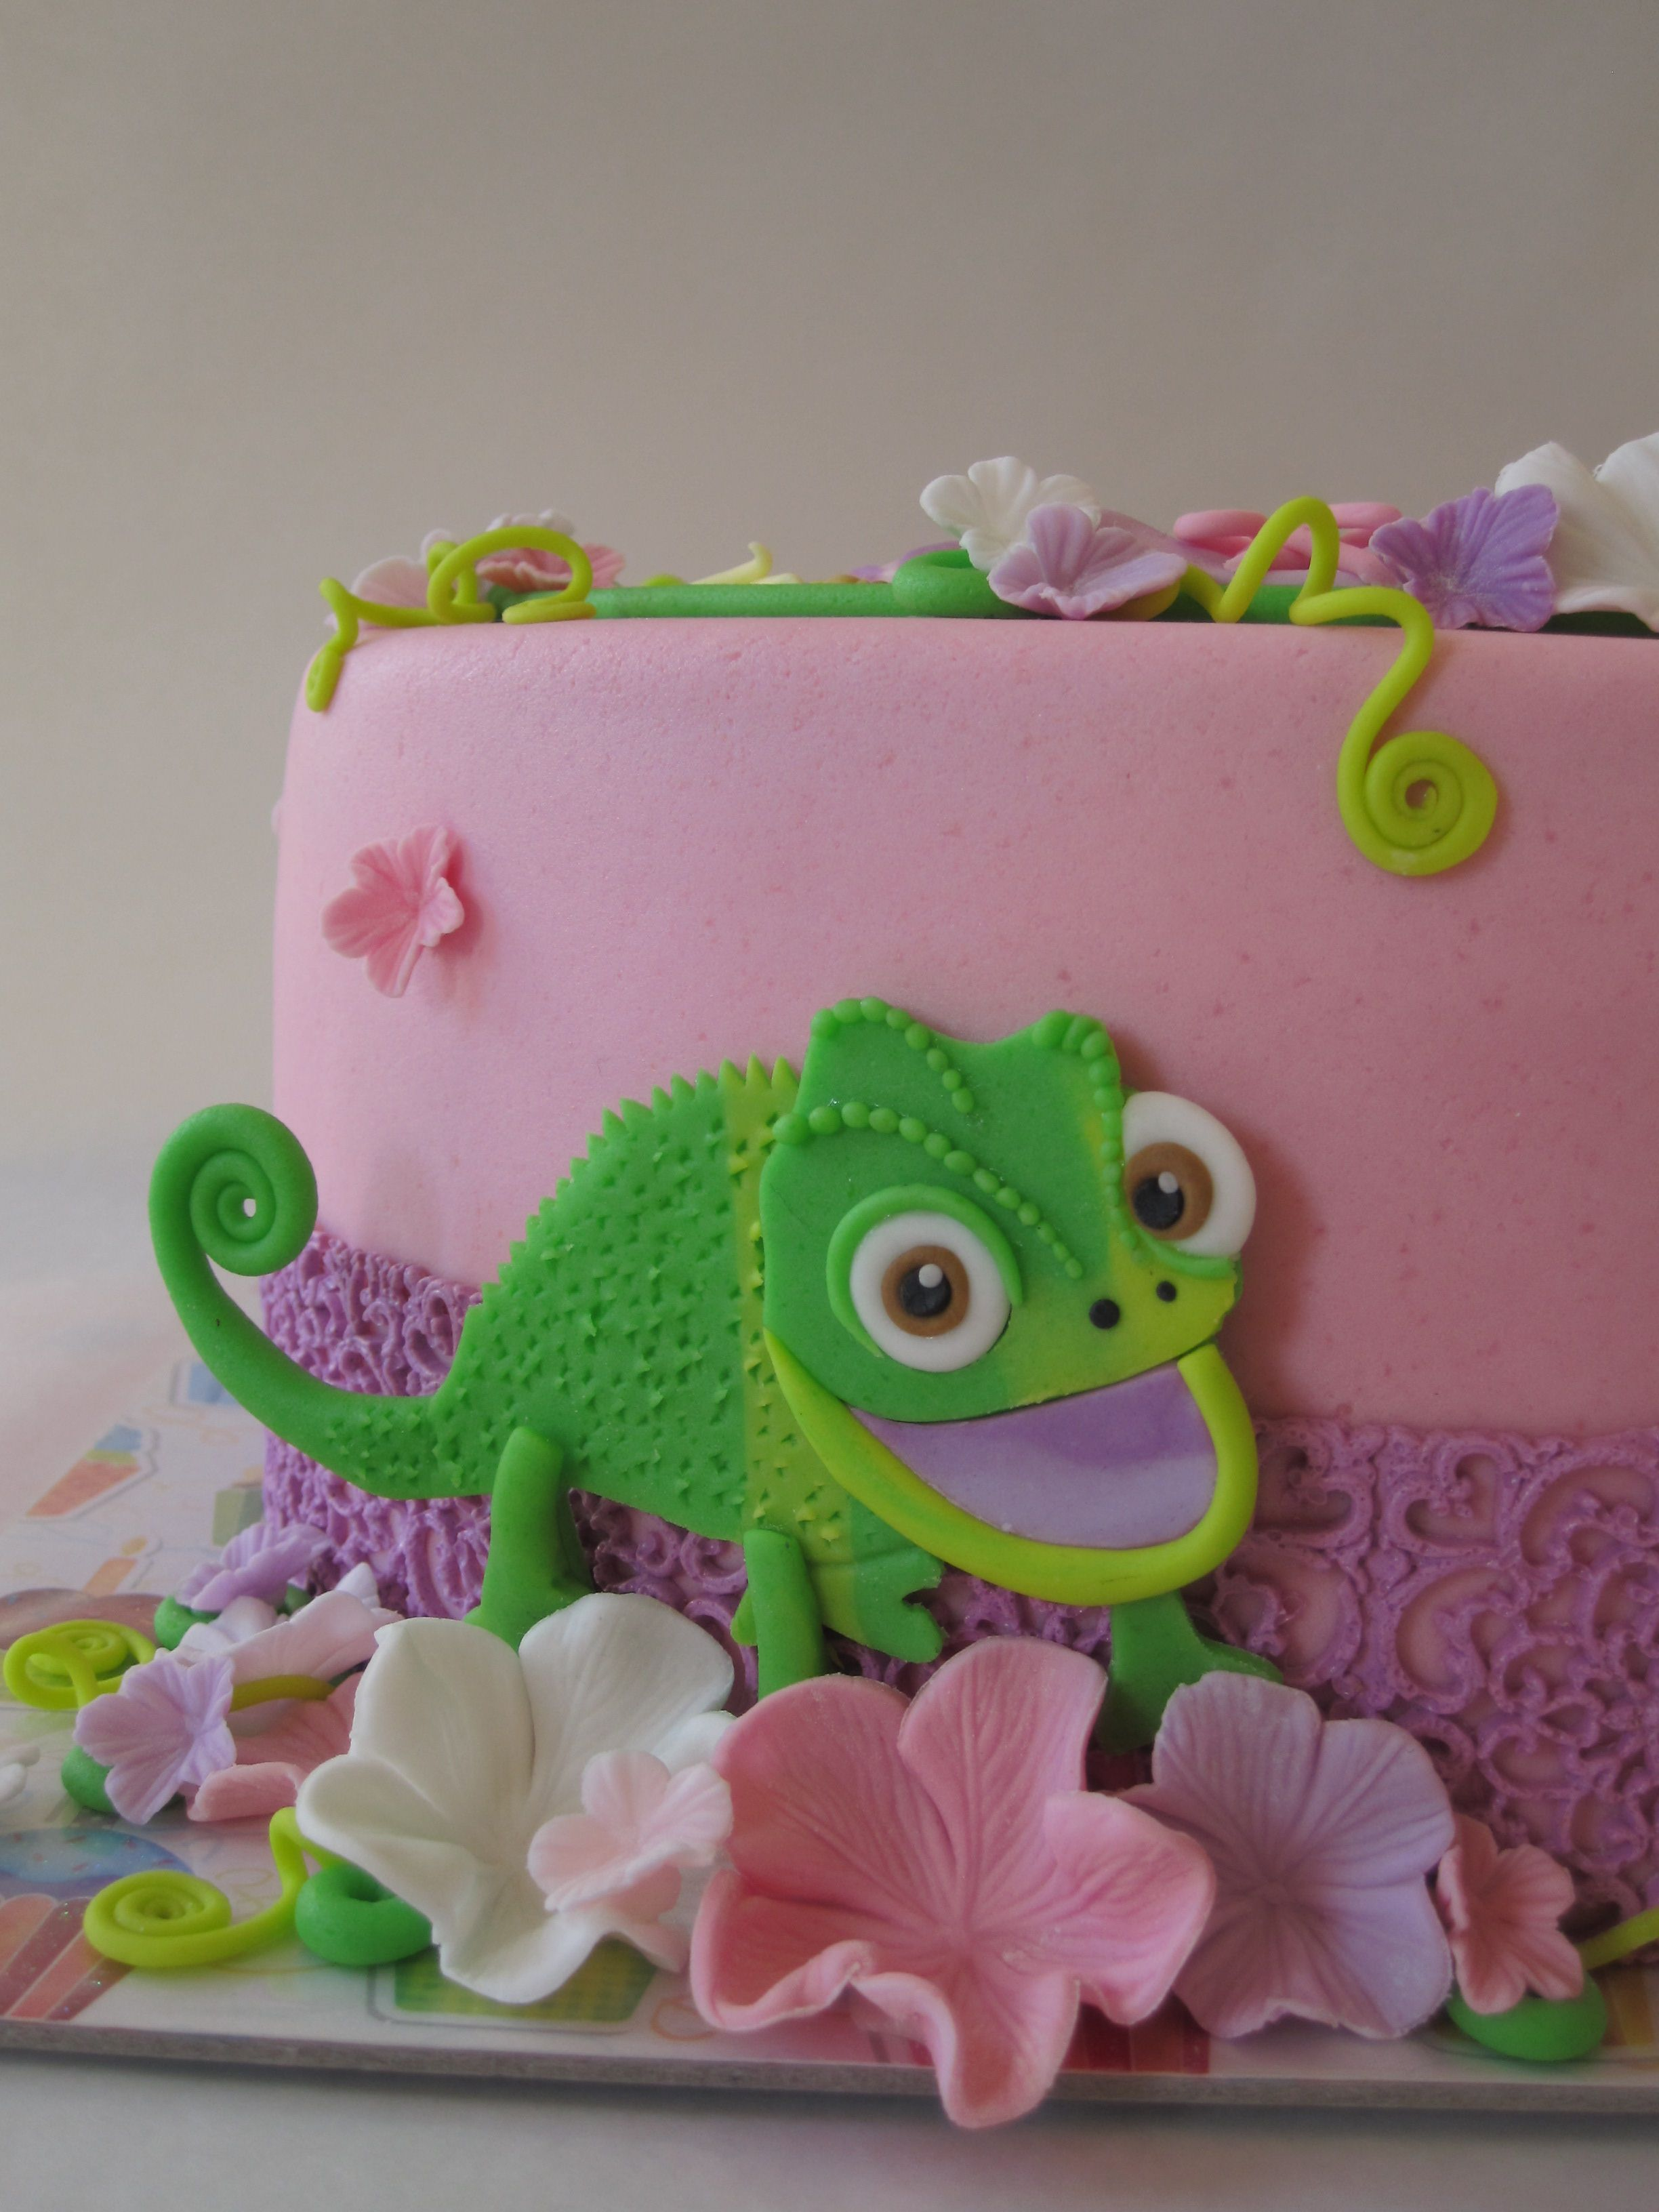 rapunzel s chameleon friend pascal sweet from zwolle pinterest raiponce fete enfant et. Black Bedroom Furniture Sets. Home Design Ideas